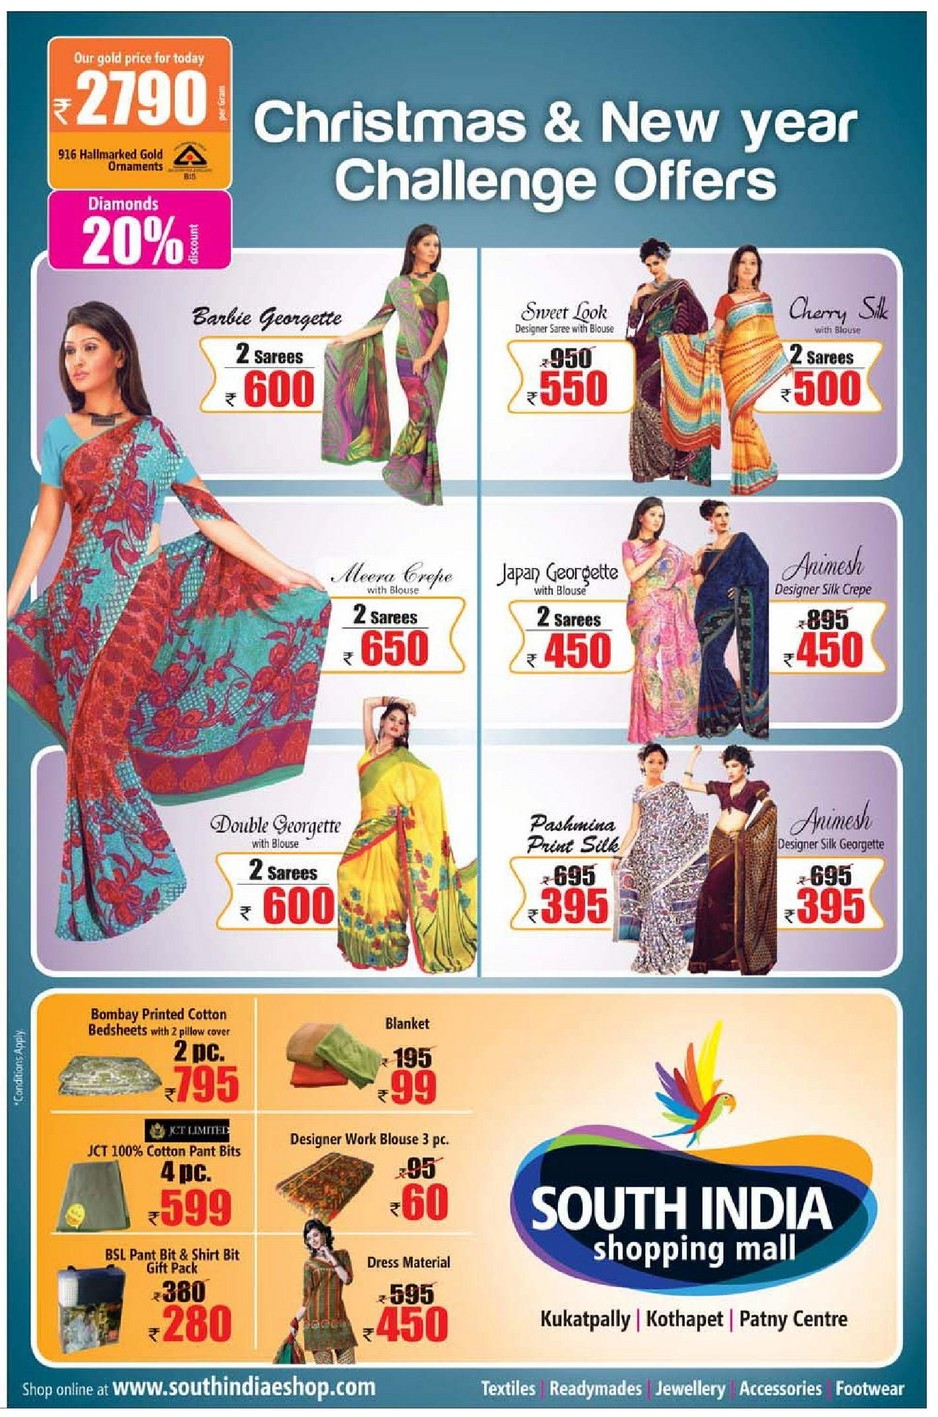 South India Shopping Mall e-Shop is a platform for a huge range of fashion products online. It was established by veterans in the trade of textiles, garments having experience of about 30 years in the field by free-desktop-stripper.mleswarlu, free-desktop-stripper.mluli, free-desktop-stripper.mlarayana, and free-desktop-stripper.mla Rao.